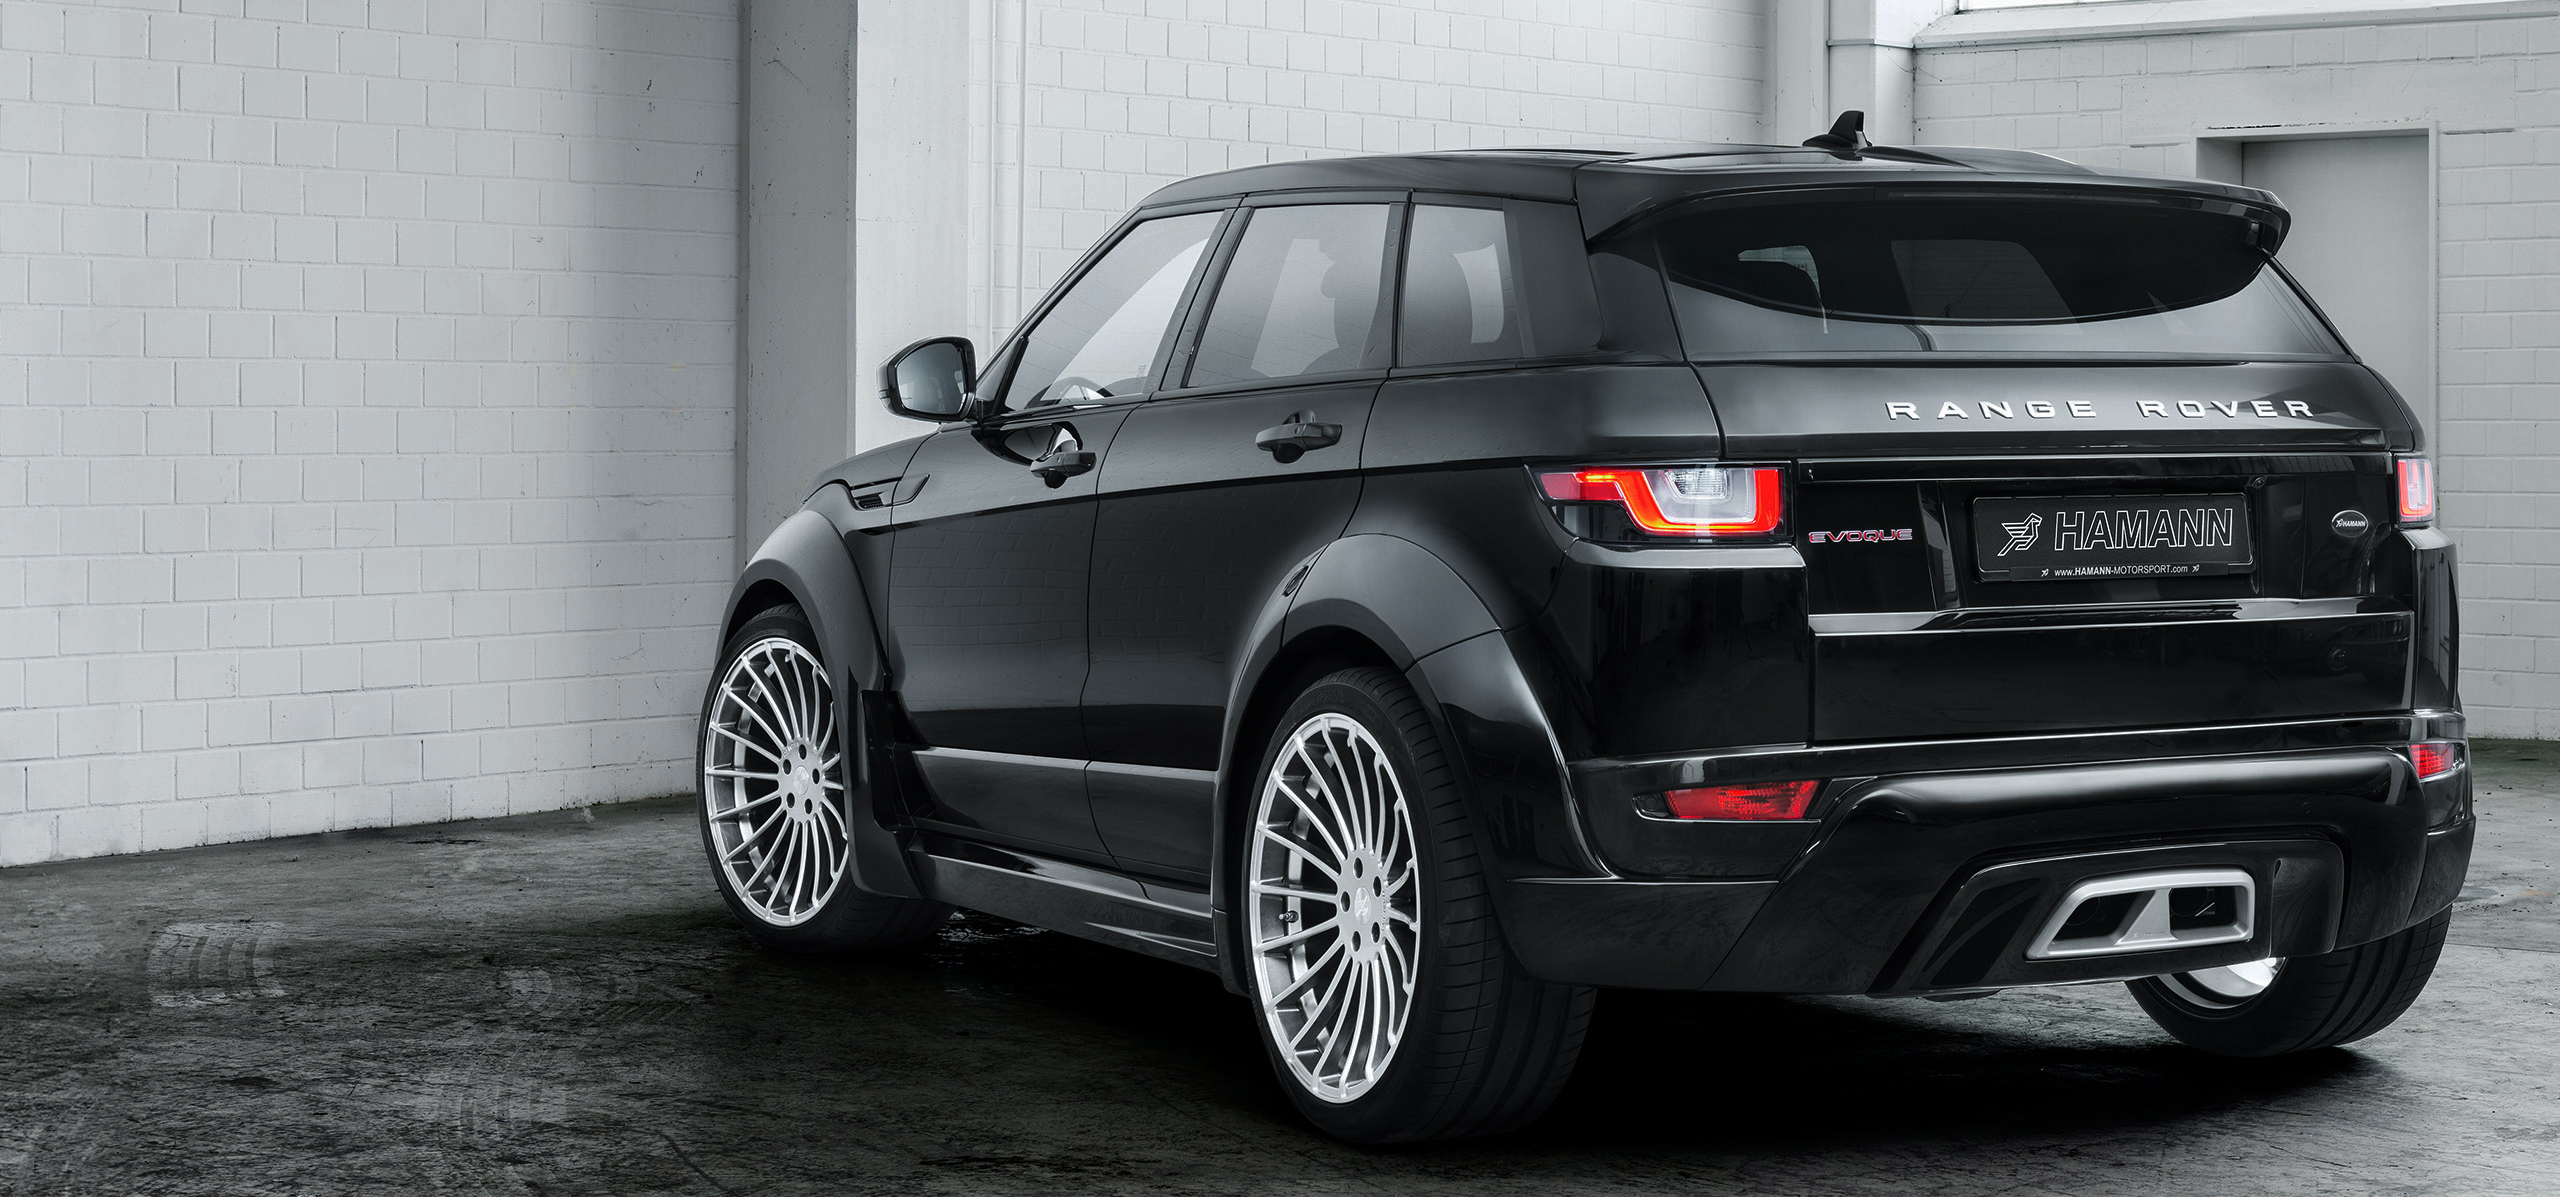 hamann range rover evoque 5 door widebody. Black Bedroom Furniture Sets. Home Design Ideas